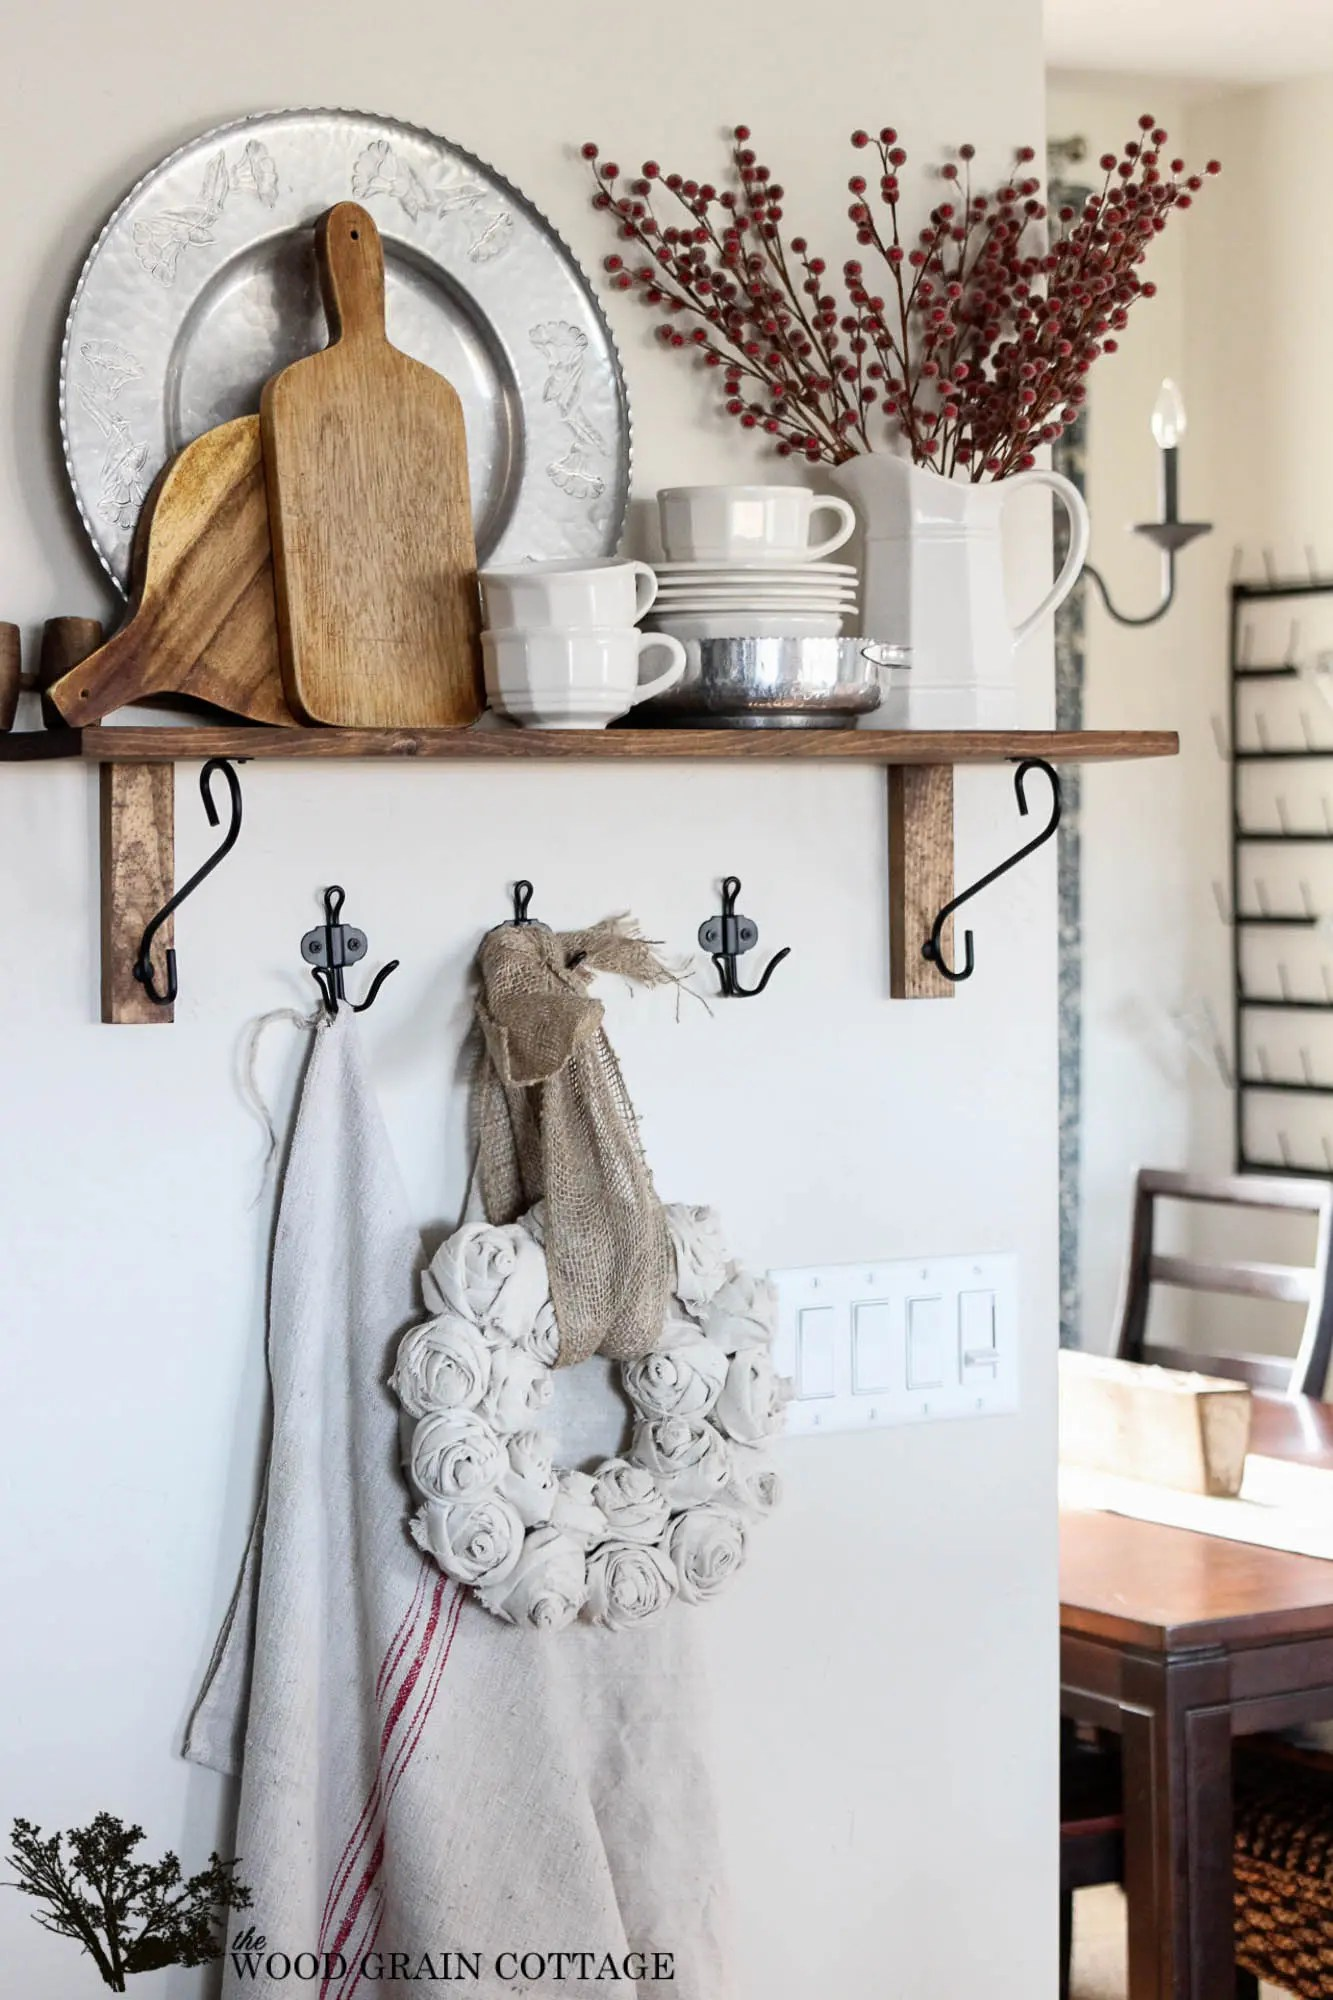 Best Christmas Kitchen Shelf The Wood Grain Cottage This Month